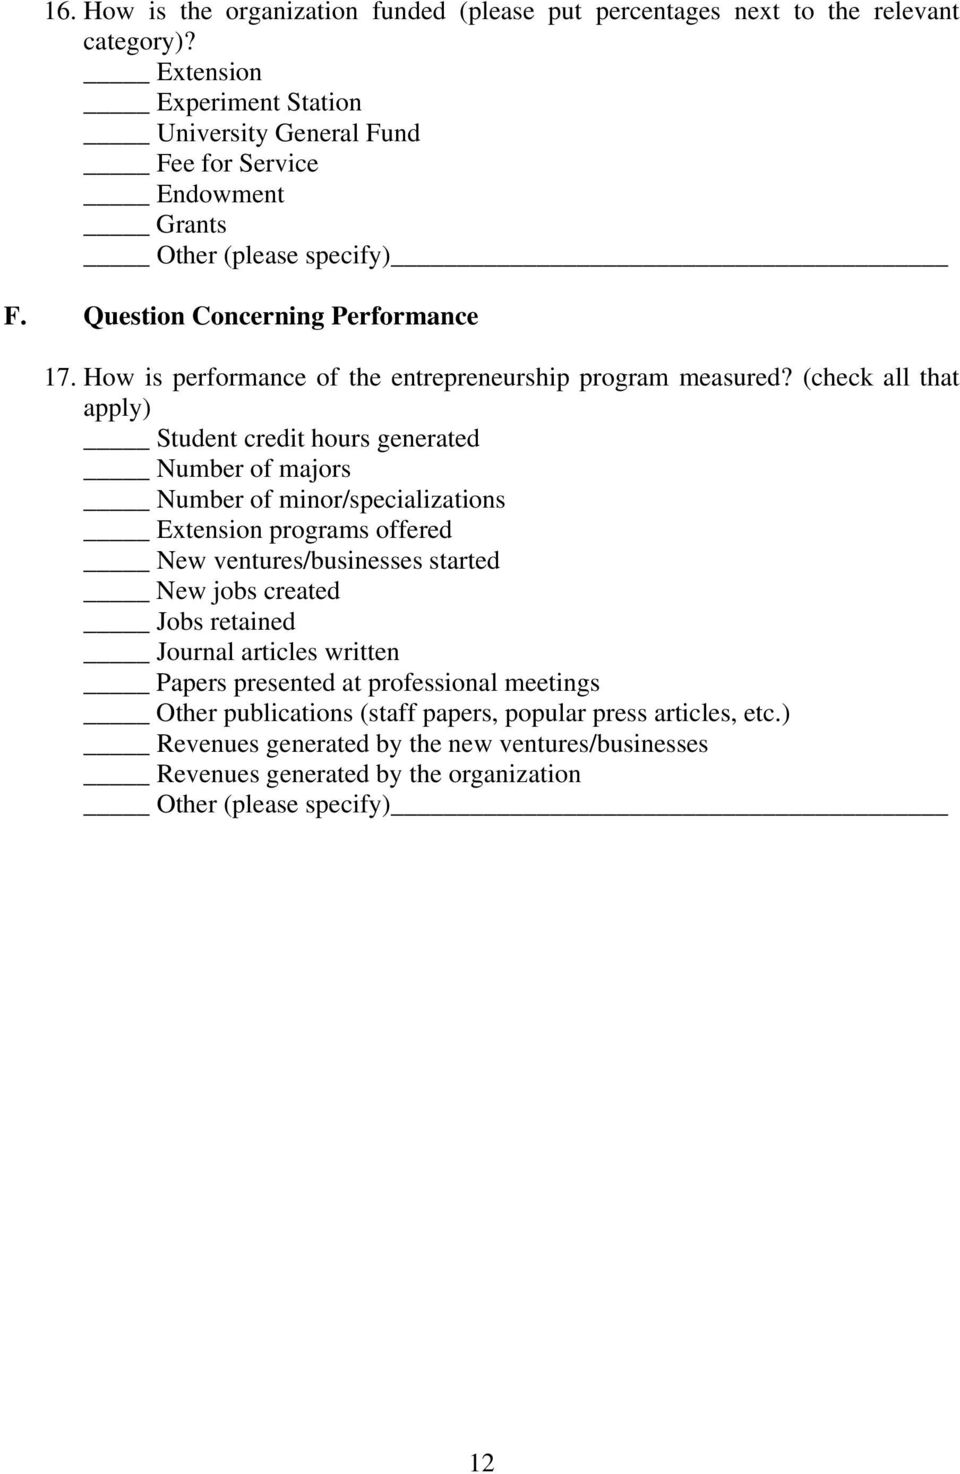 How is performance of the entrepreneurship program measured?